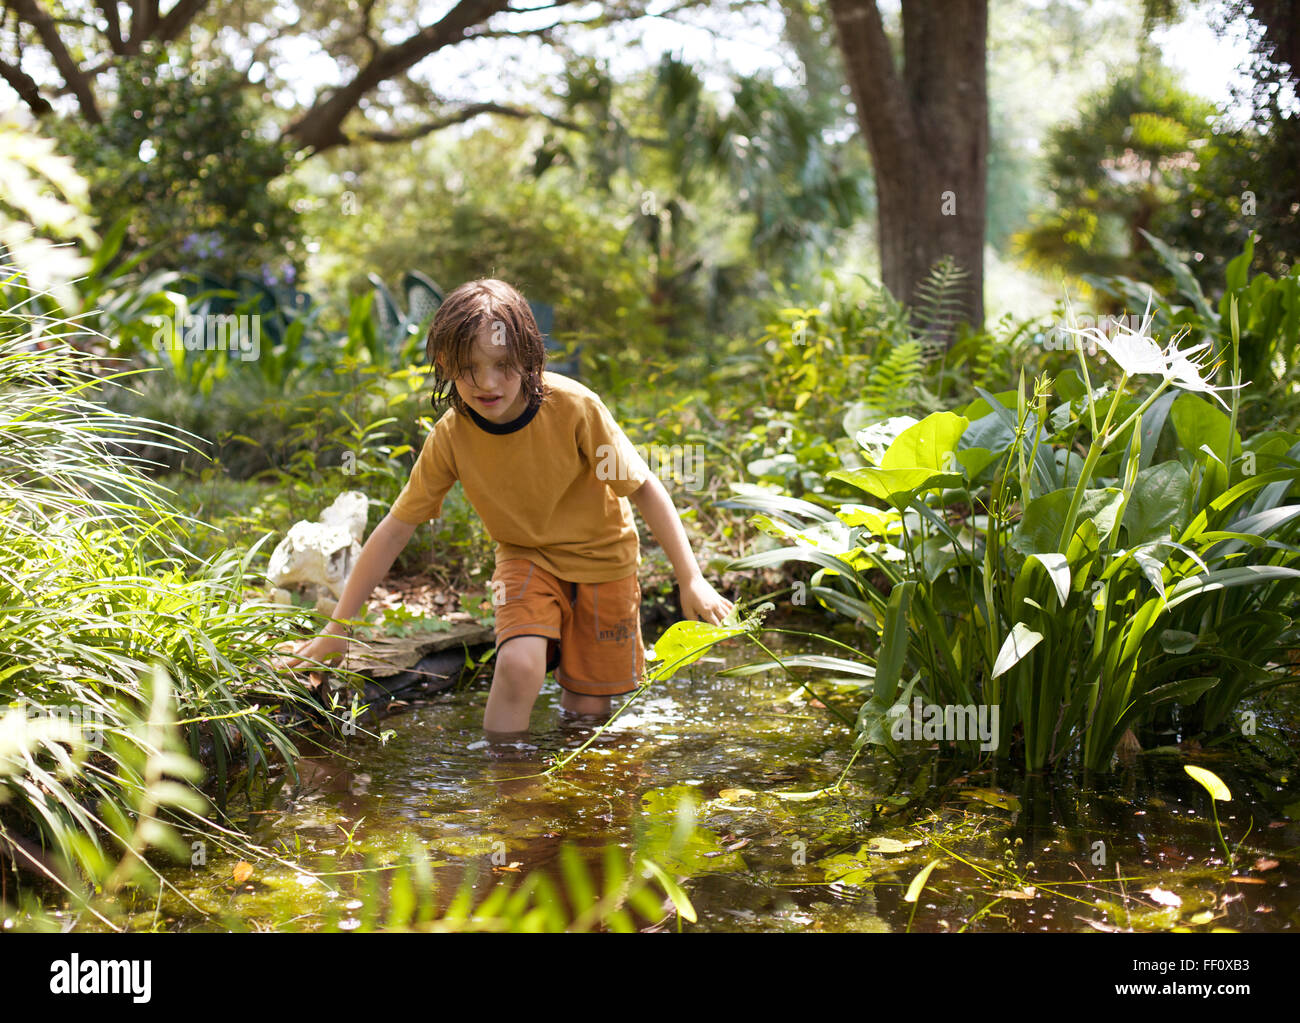 A boy wades knee deep in a small pond in a lush green setting. - Stock Image